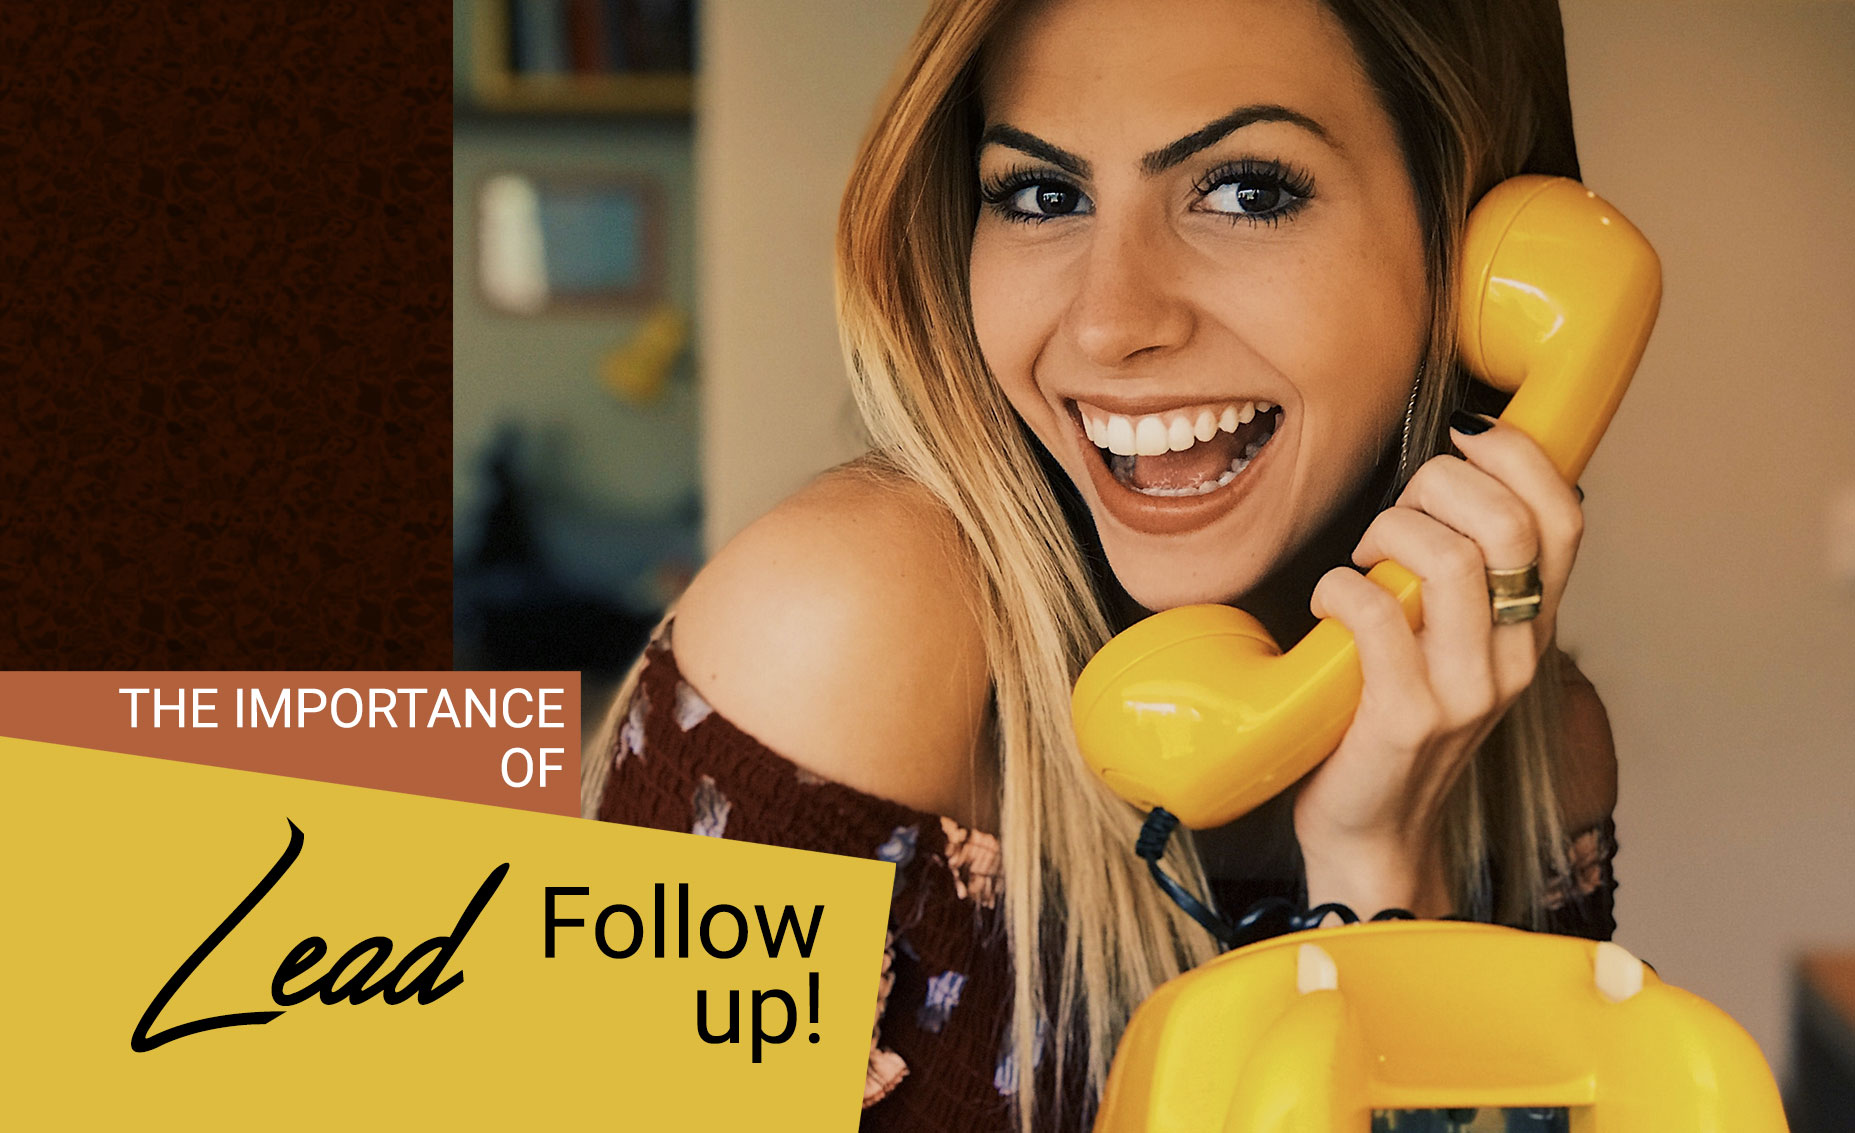 Lead follow-up is crucial, so it's important to know exactly what you are getting with your provider. Make sure you understand the types of follow-up that they can provide and when they can provide it. Make sure you can personalize your follow-up.